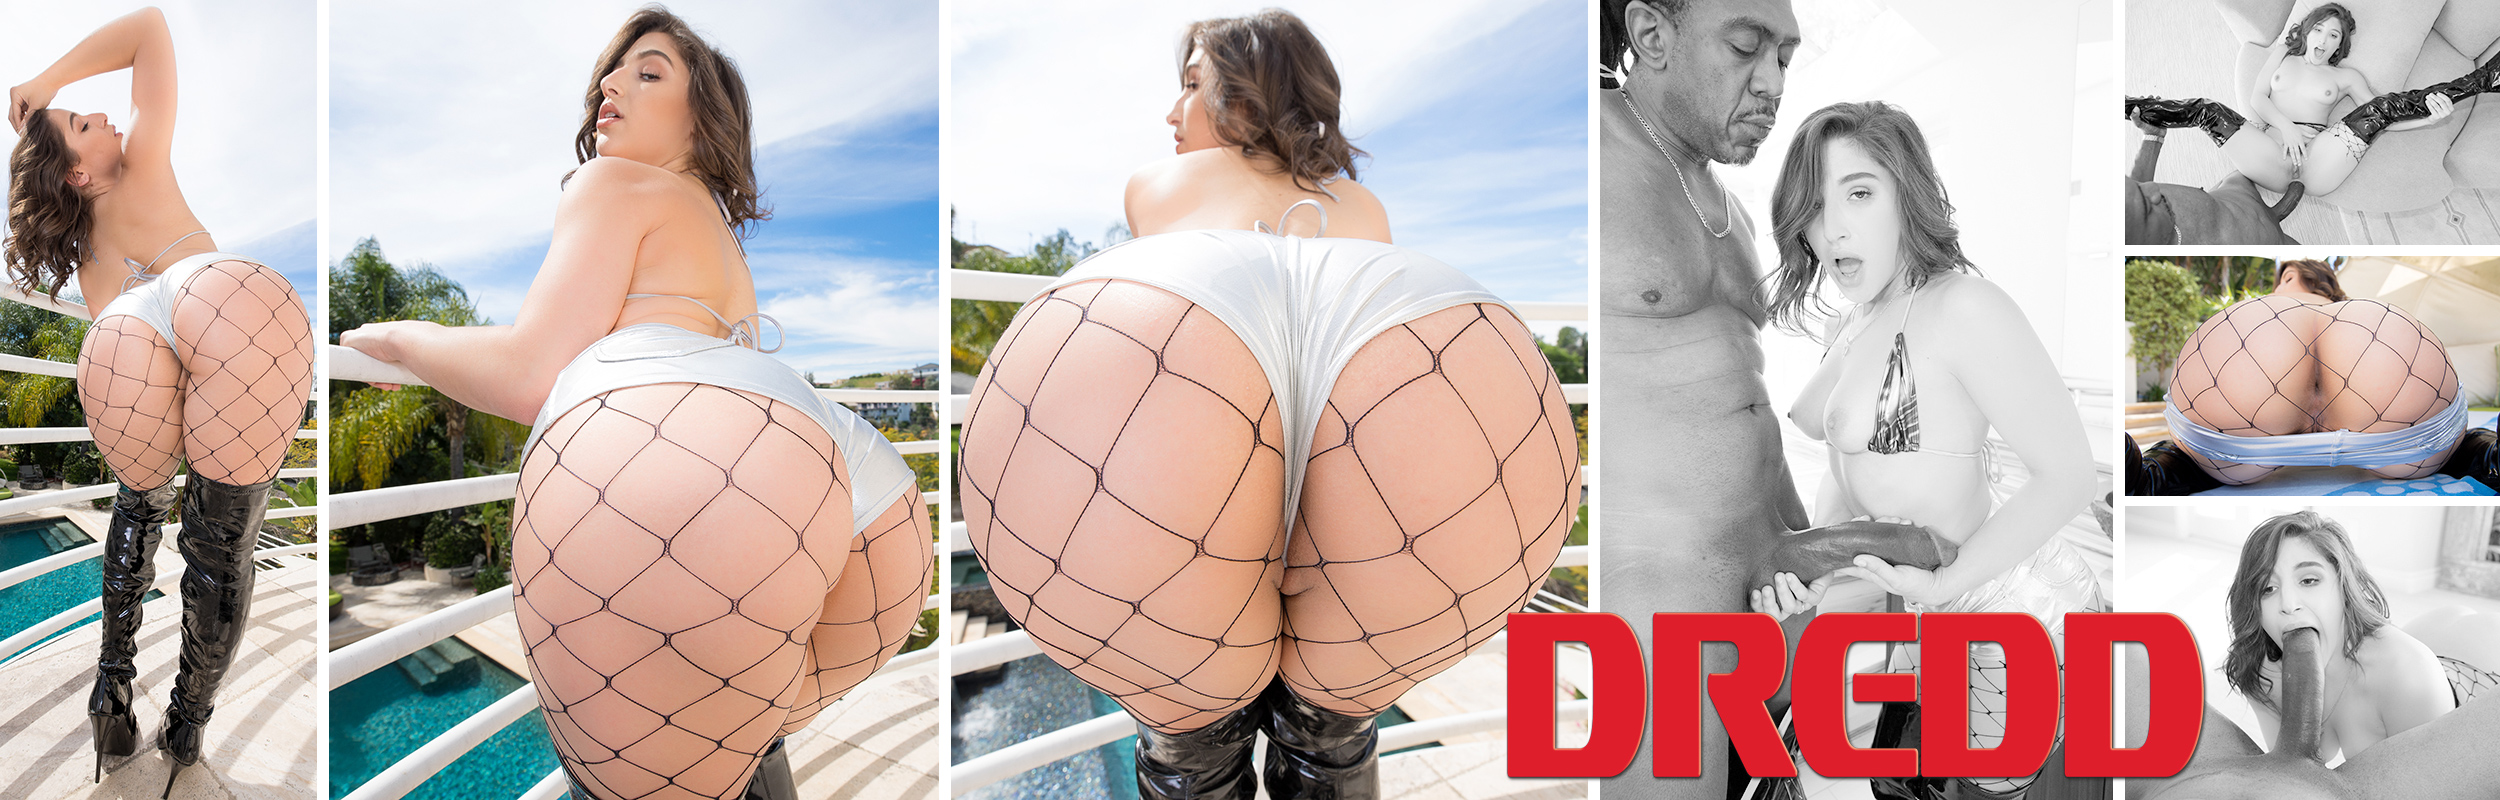 Abella Danger Has Her ASS Stretched Open By A Big Black Cock